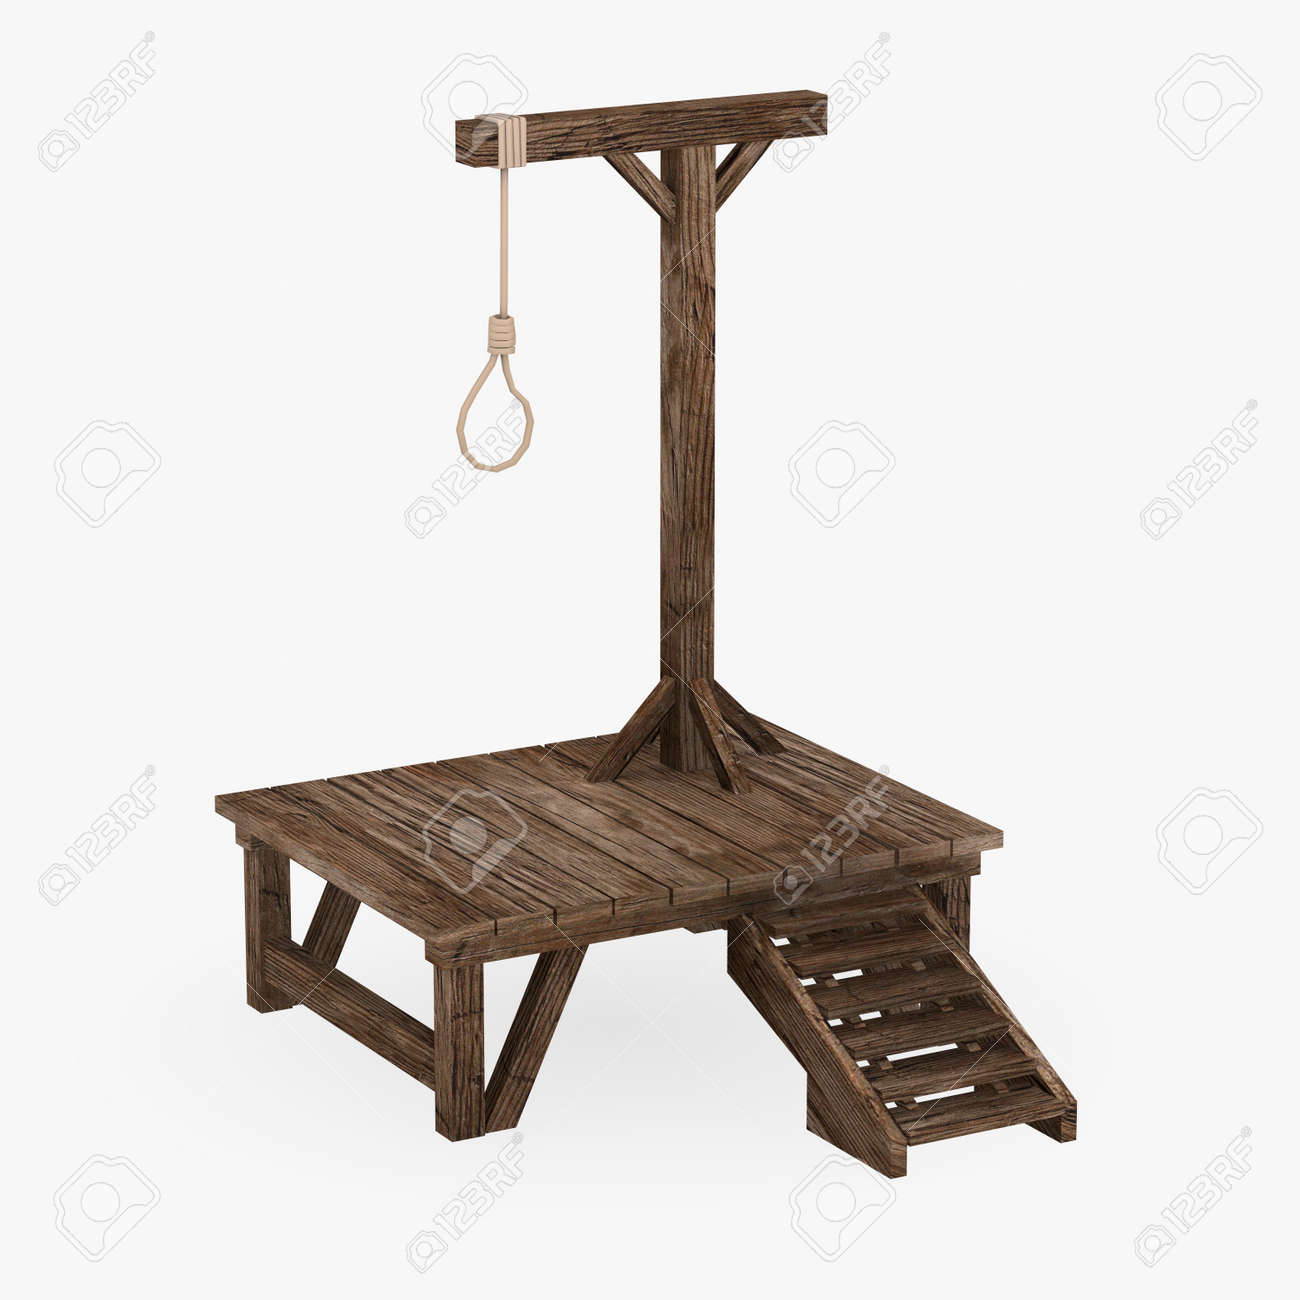 13743474-3d-render-of-medieval-gallows-Stock-Photo.jpg